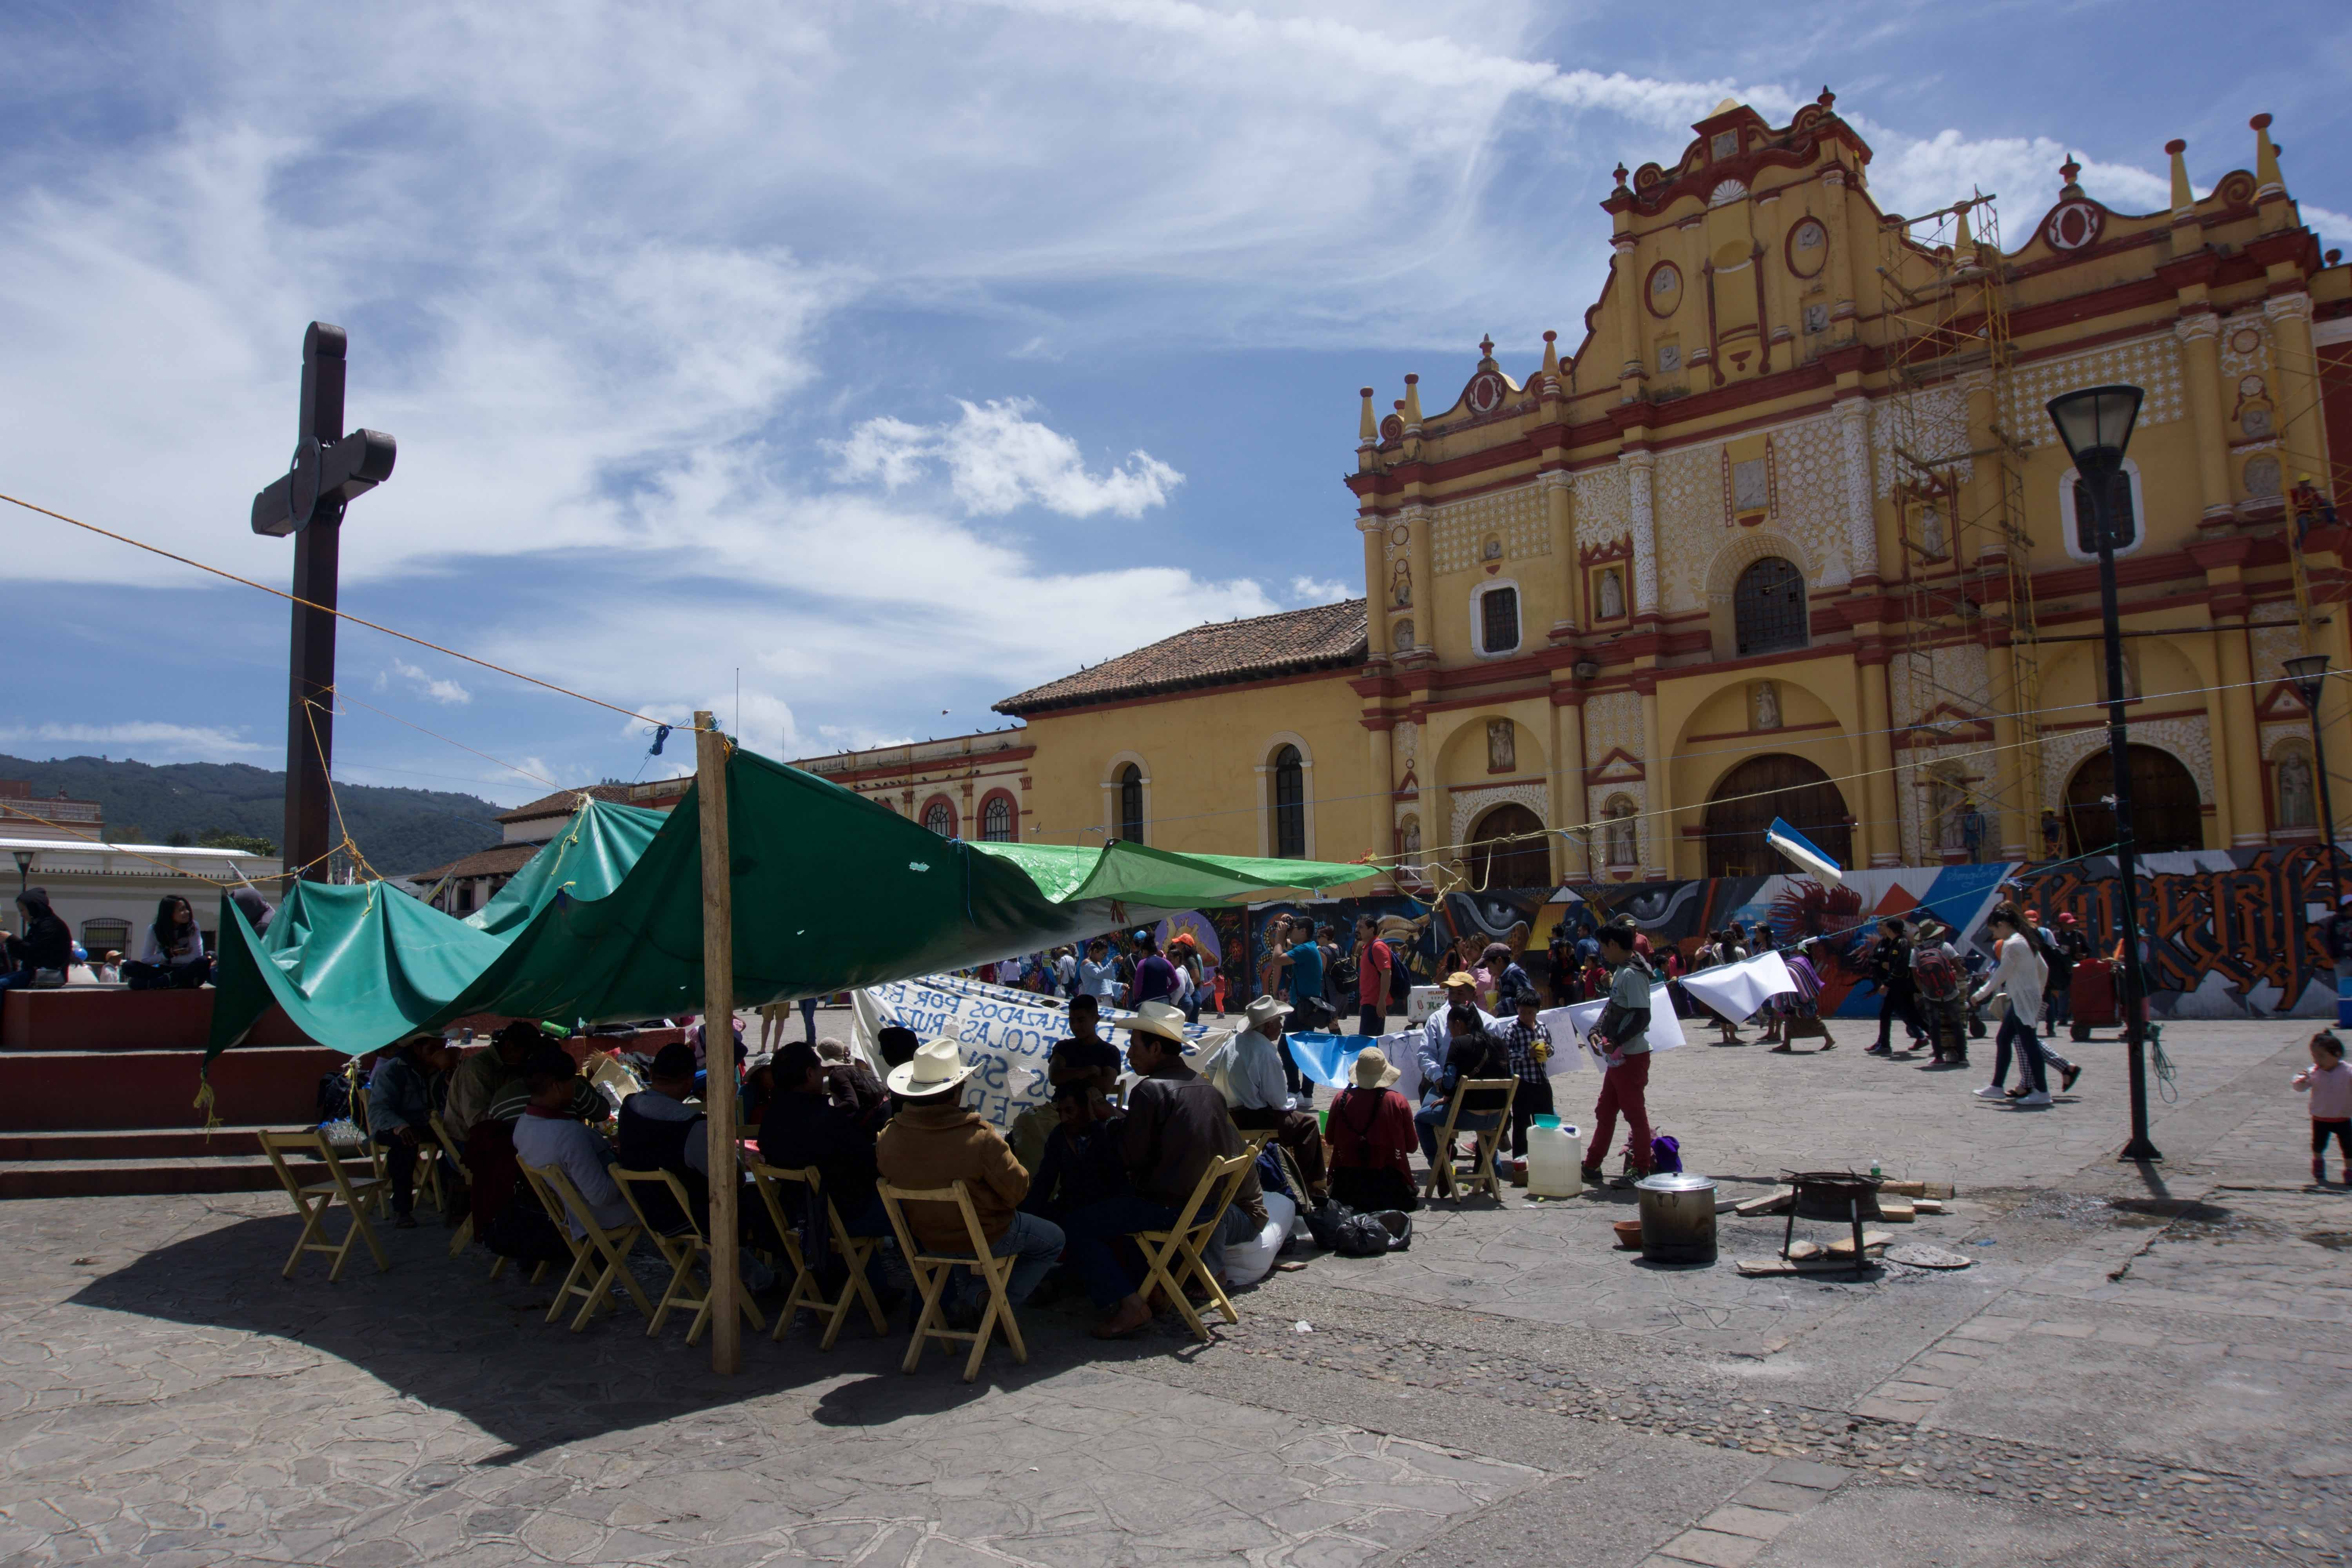 Forced from their village by armed invaders, the people of Nicolas Ruiz have set up camp in the center of San Cristobal de las Casas. They live in a makeshift tarp ill-fitted to protect them from the elements.Image by Jared Olson. Mexico, 2018.